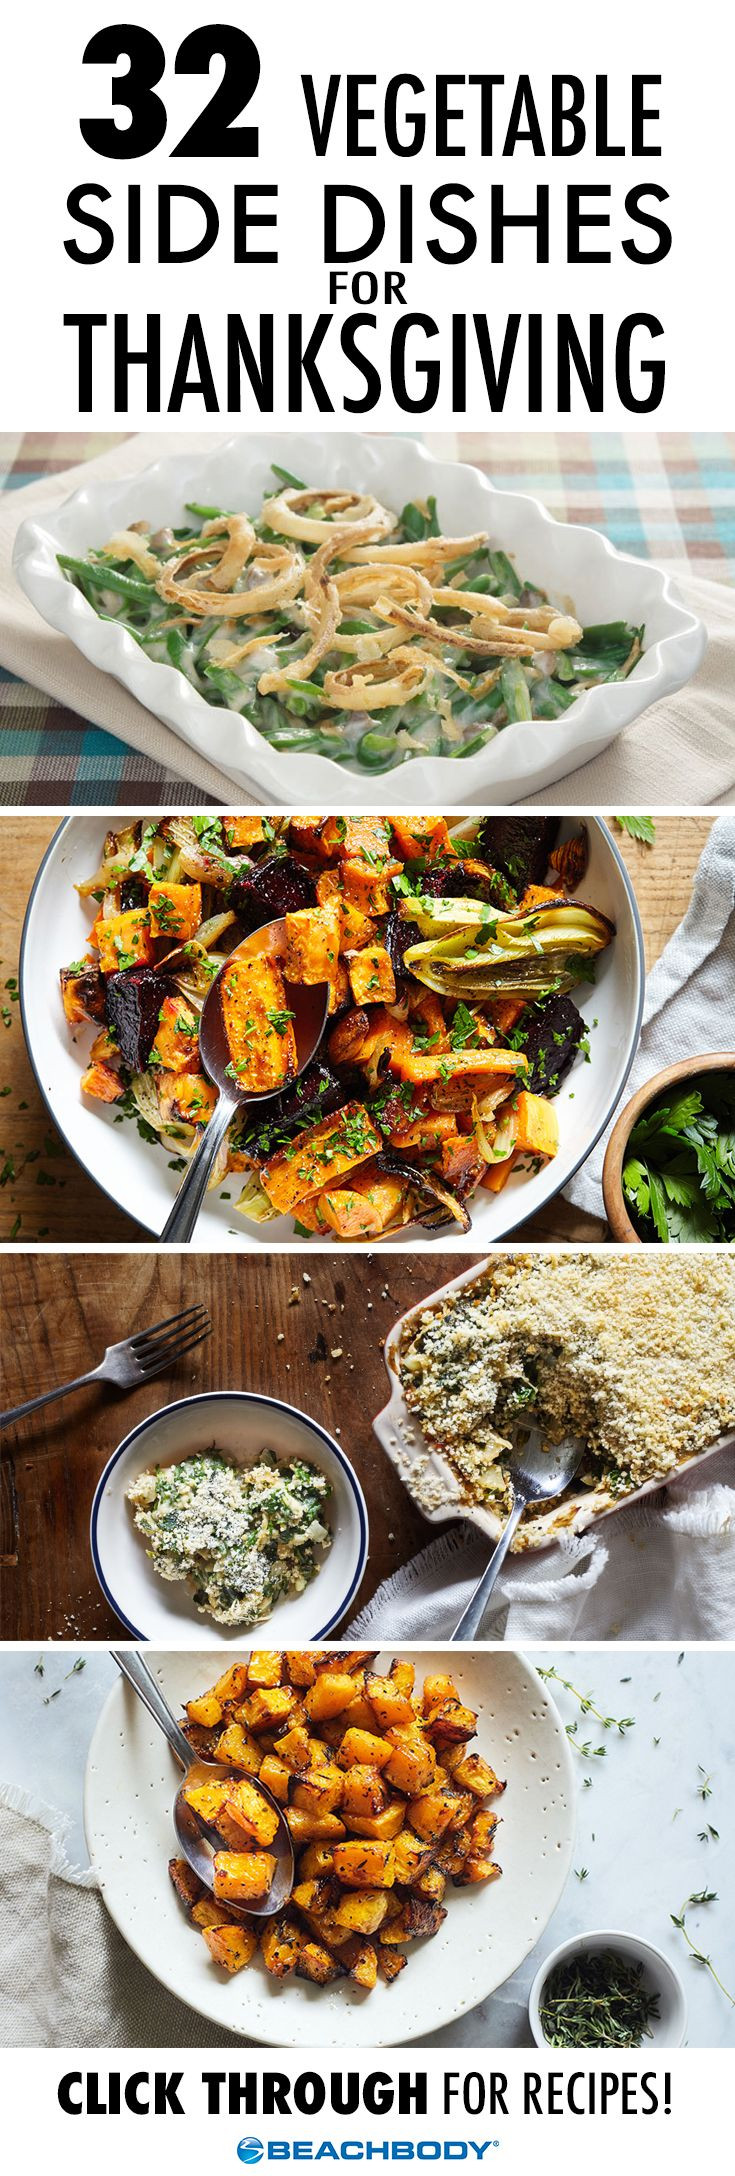 Vegetarian Sides For Thanksgiving  837 best images about Healthy Recipes on Pinterest